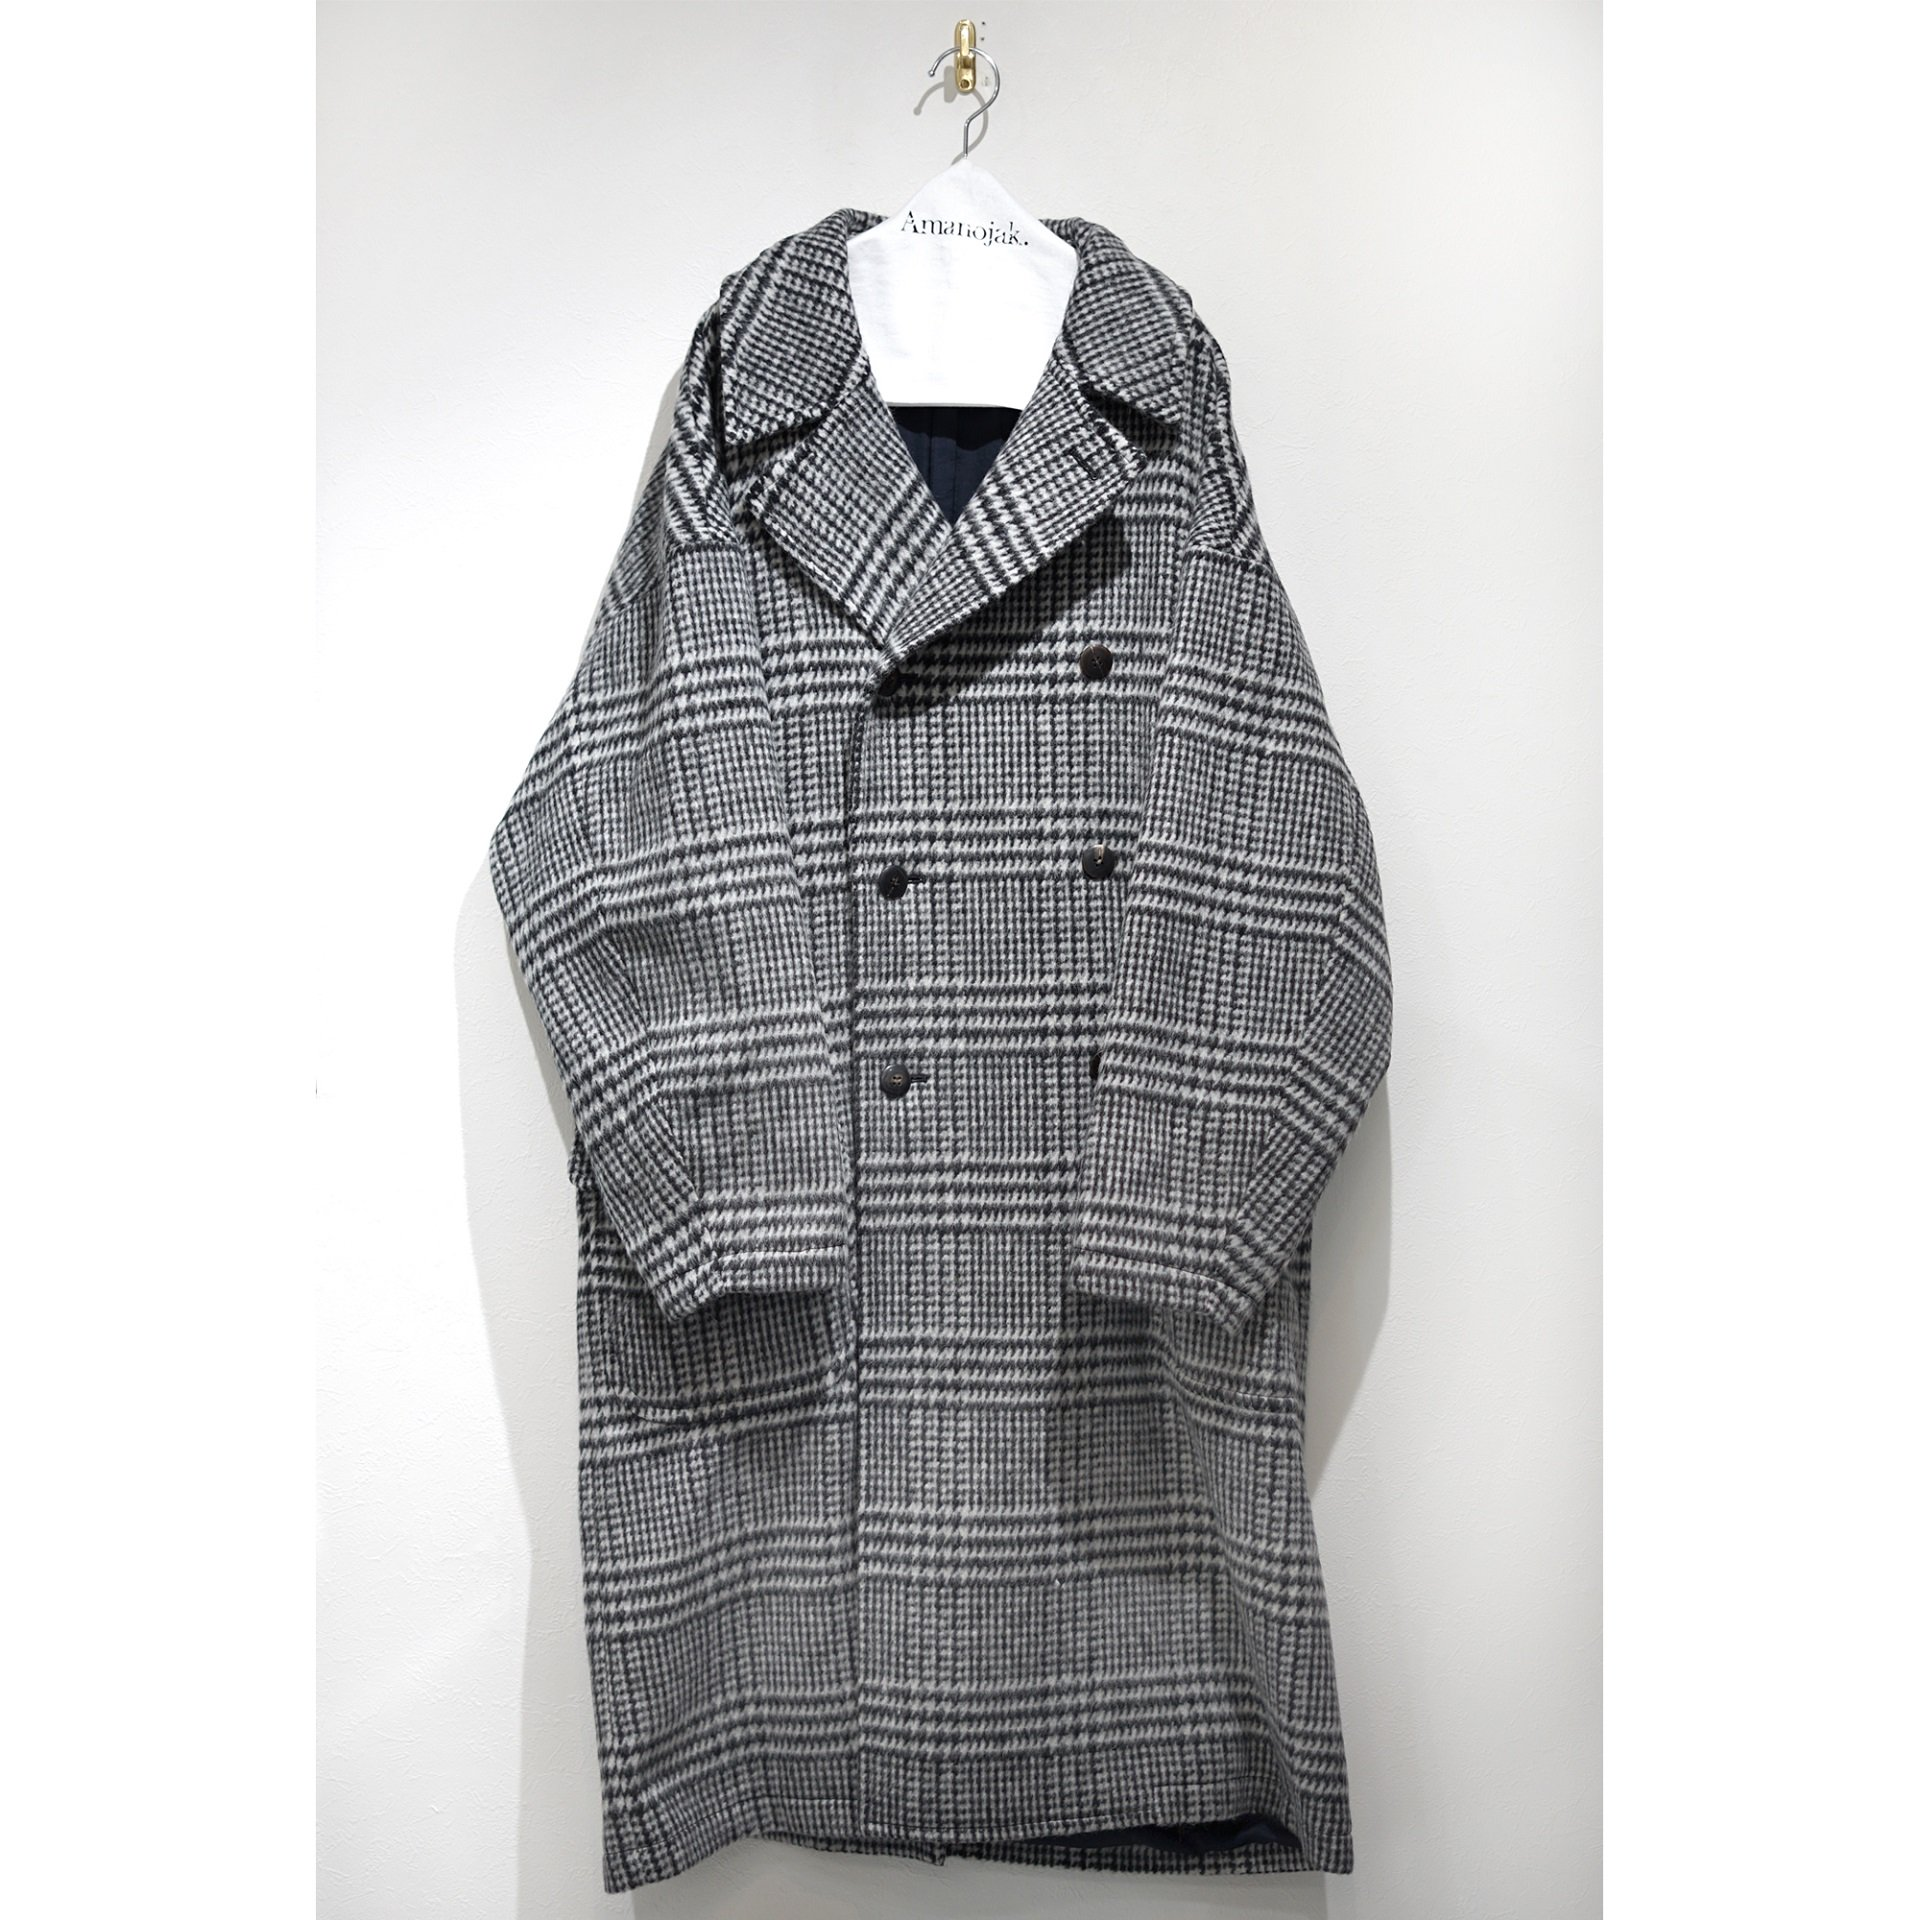 JULIEN DAVID-NAP SHAGGY GLEN CHECK SUITING COAT